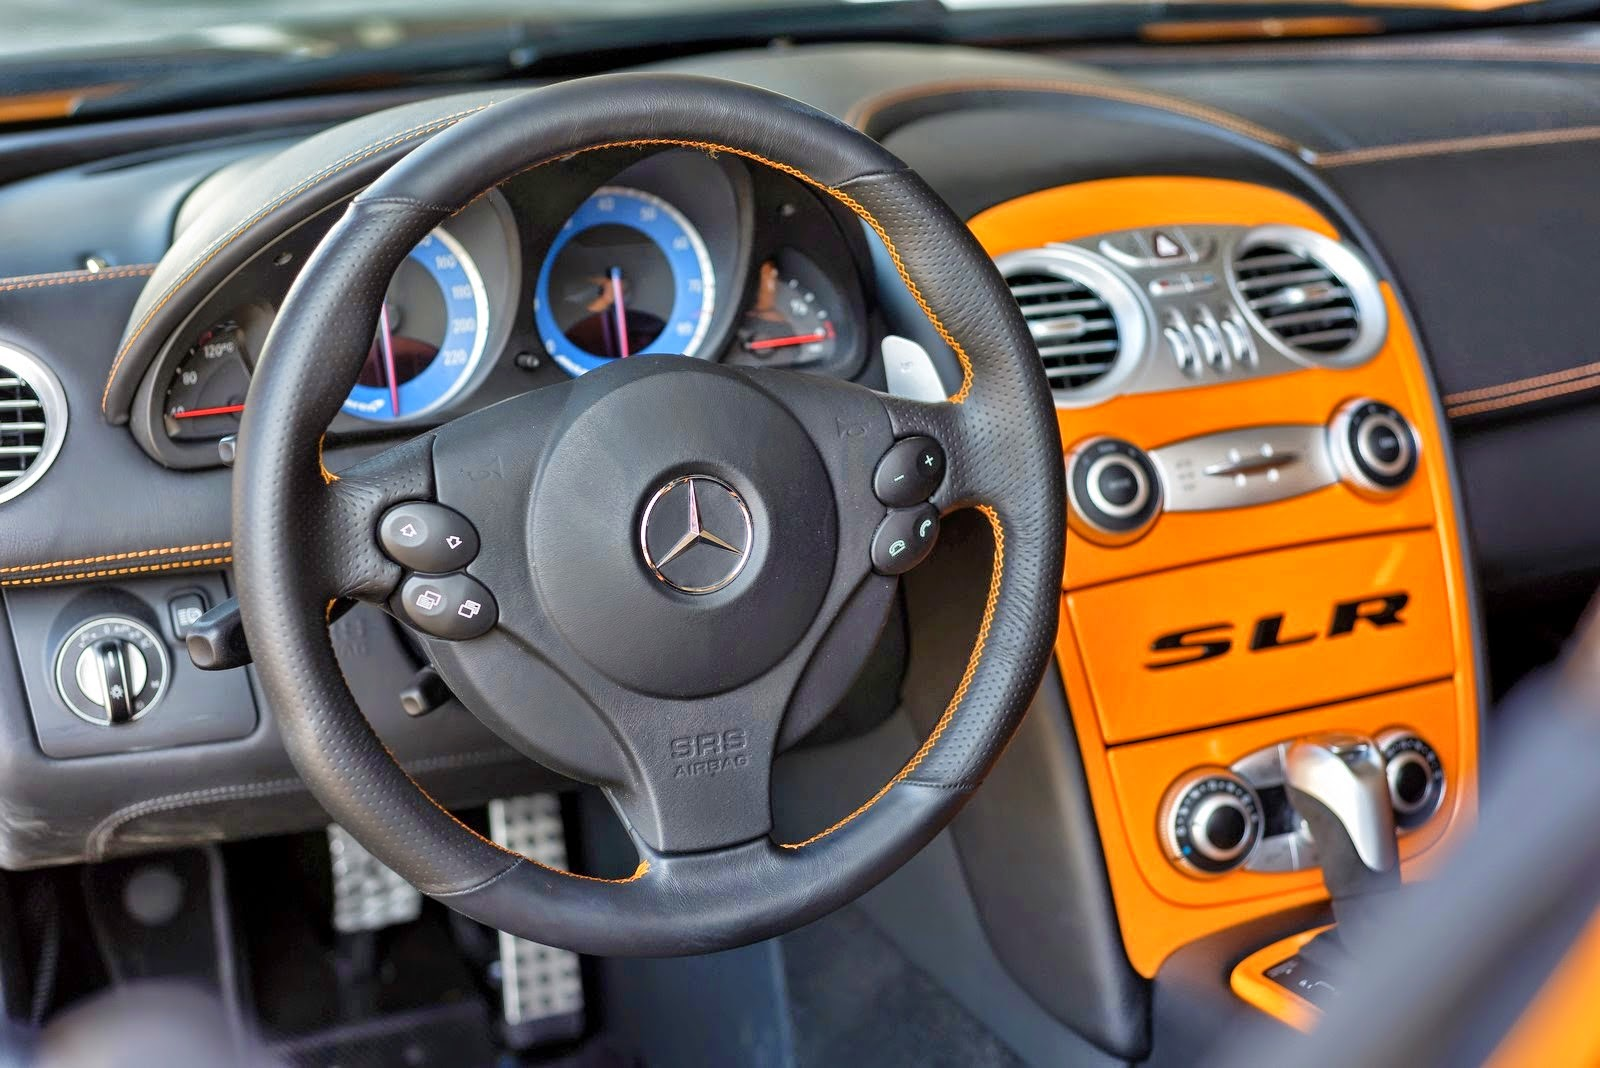 Mercedes C Class For Sale >> Mercedes-Benz SLR McLaren 722S Roadster Edition | BENZTUNING